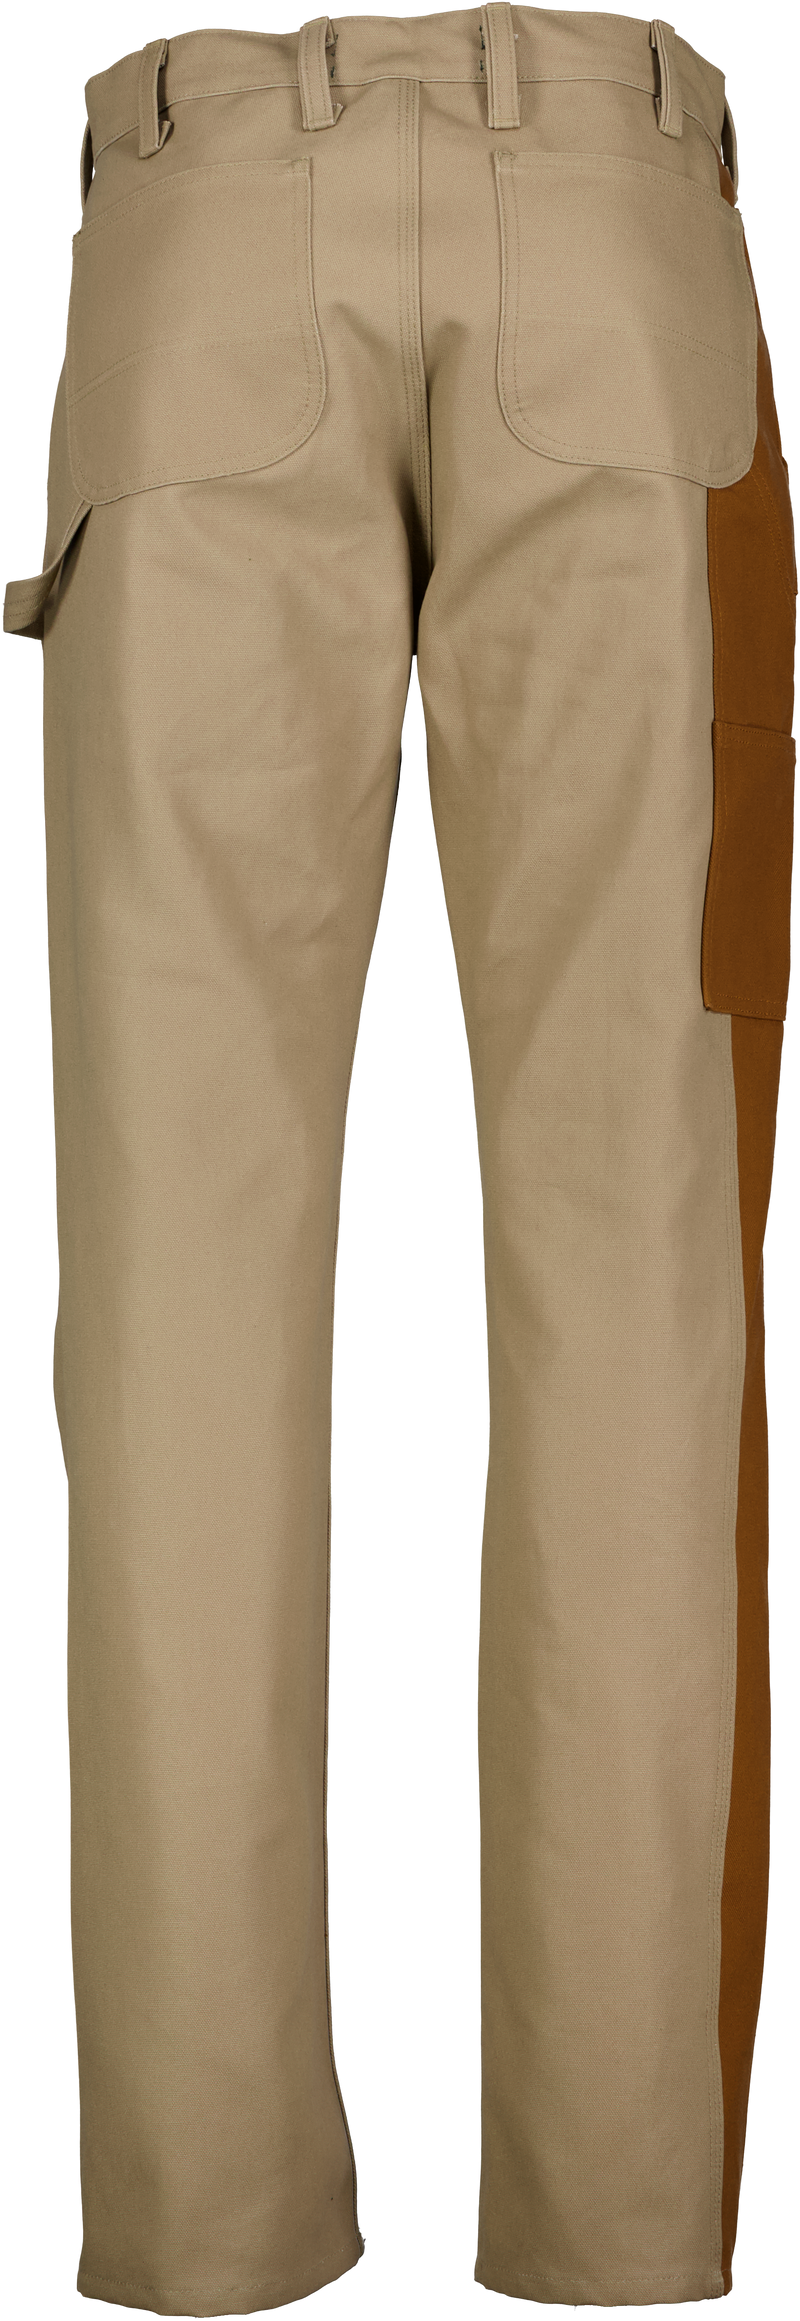 Two Tone Construction Pants